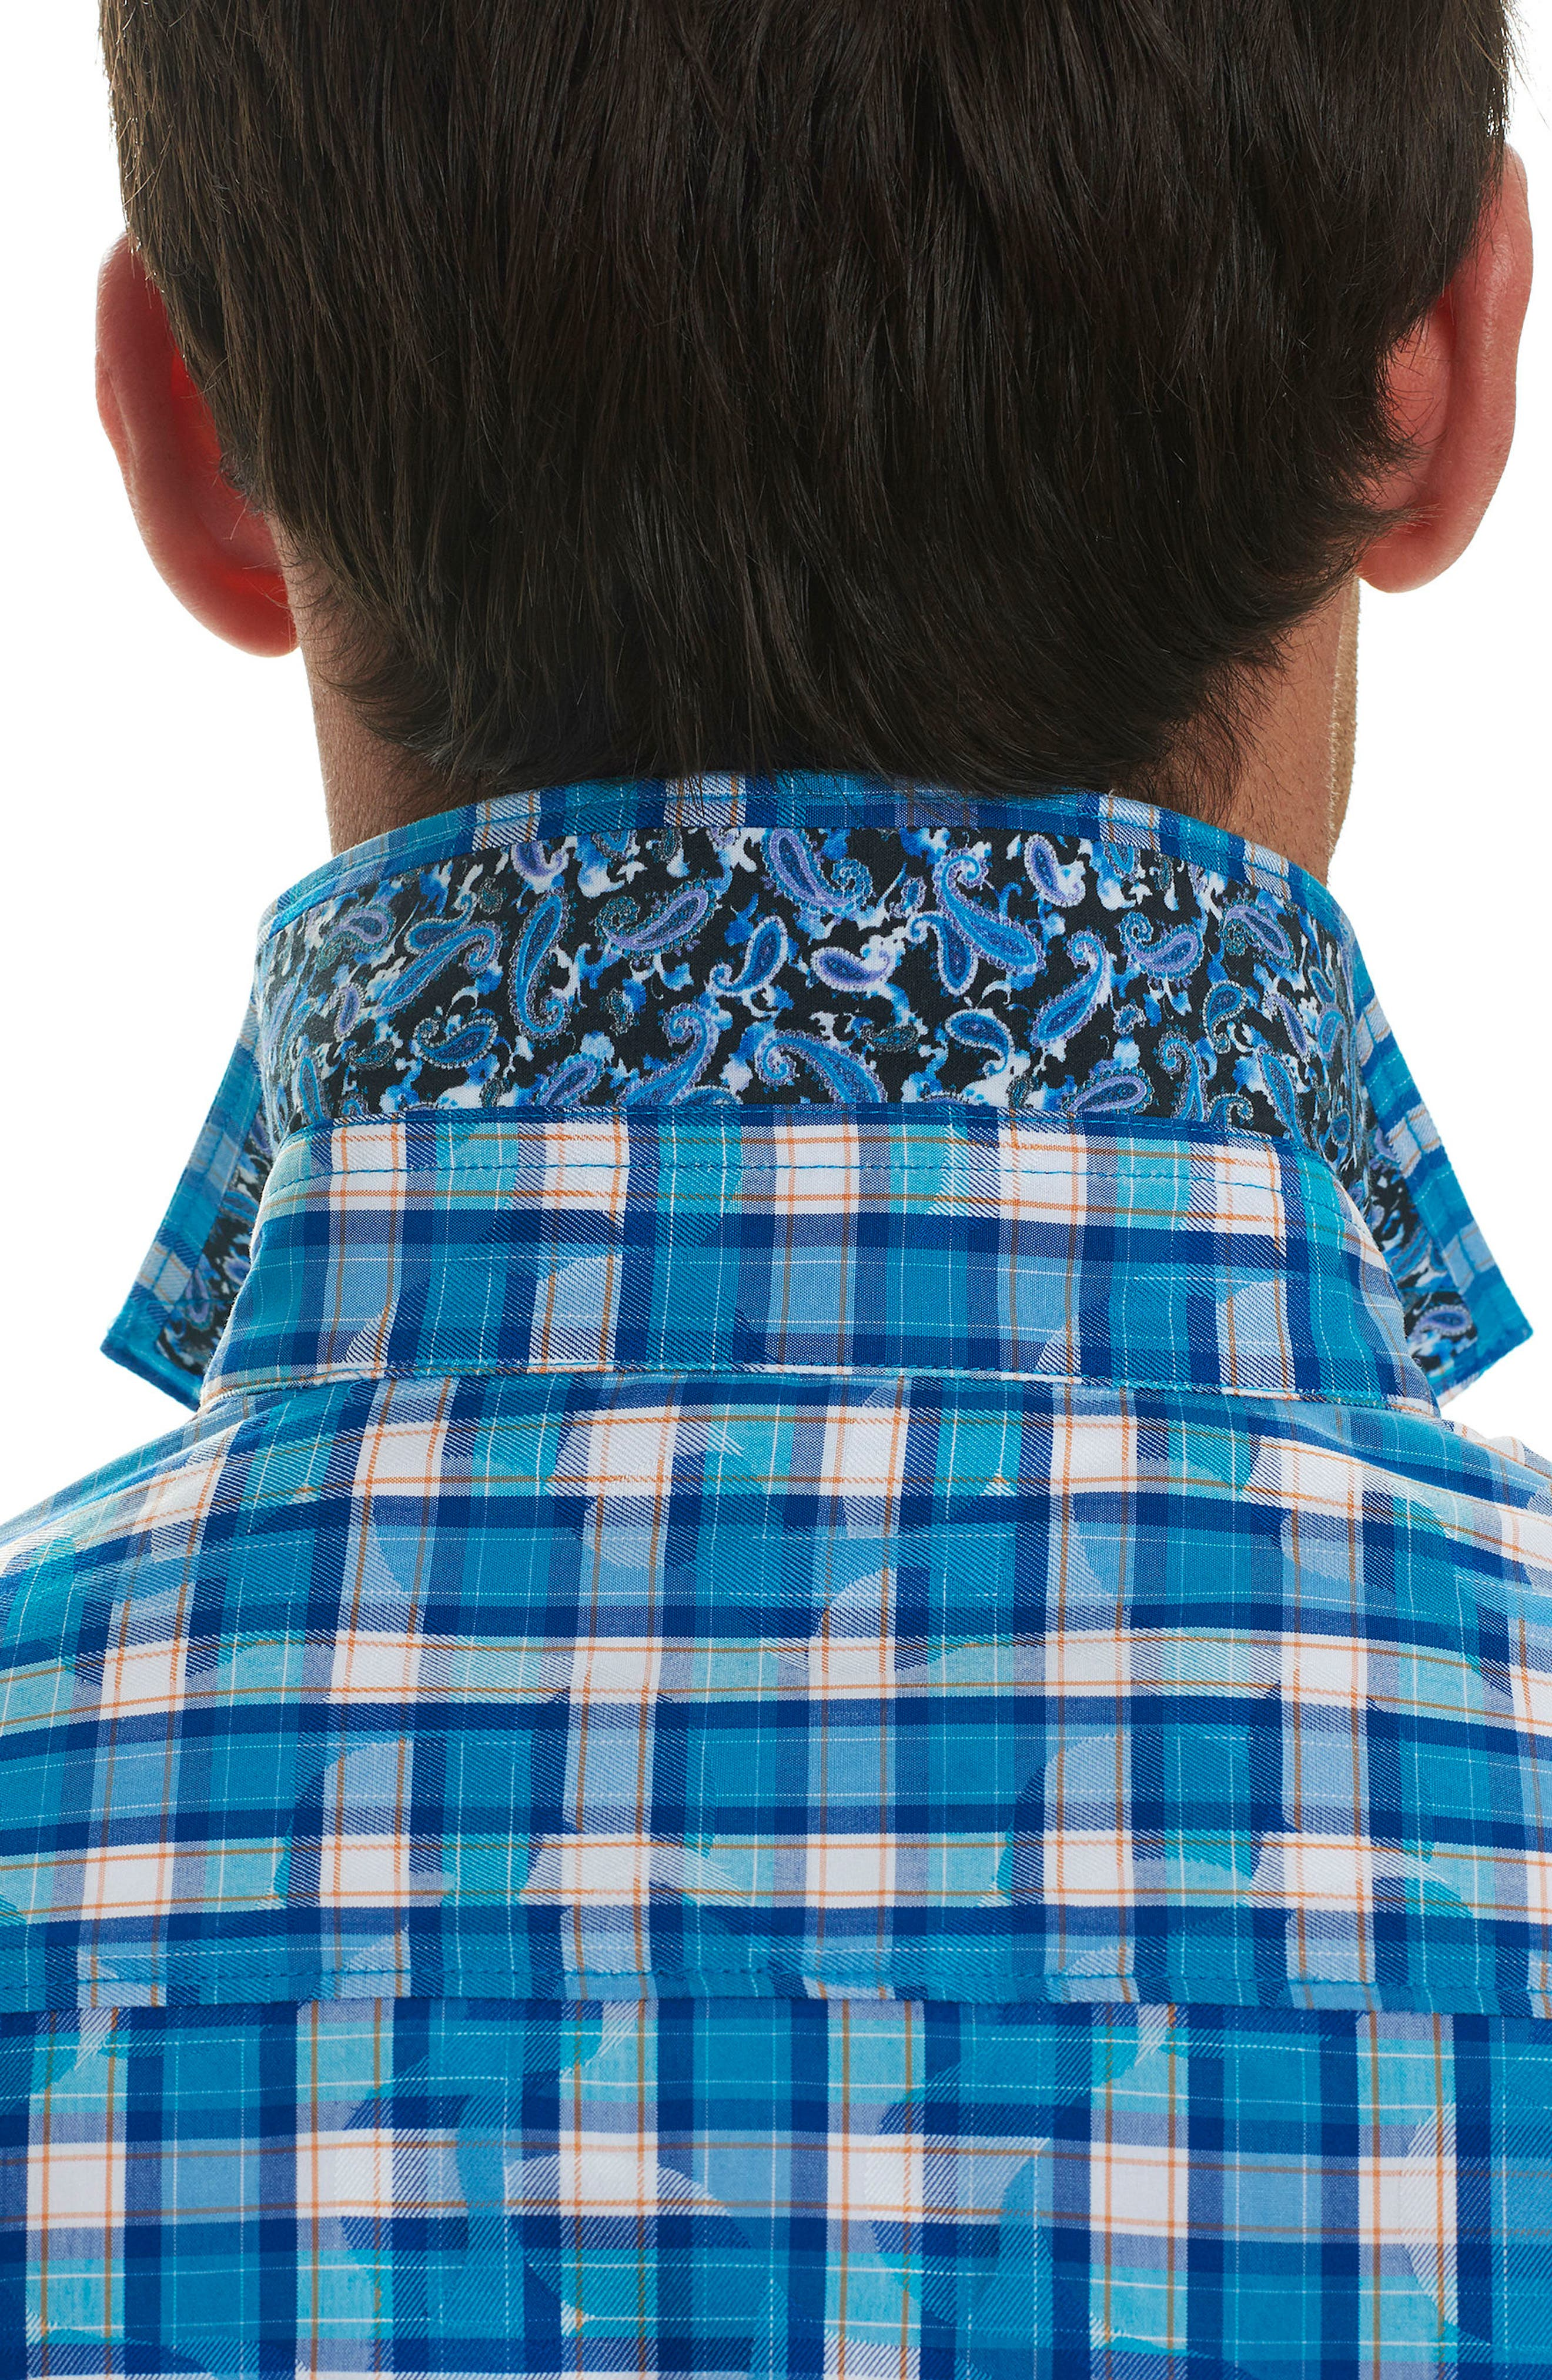 Tangier Classic Fit Print Sport Shirt,                             Alternate thumbnail 5, color,                             444